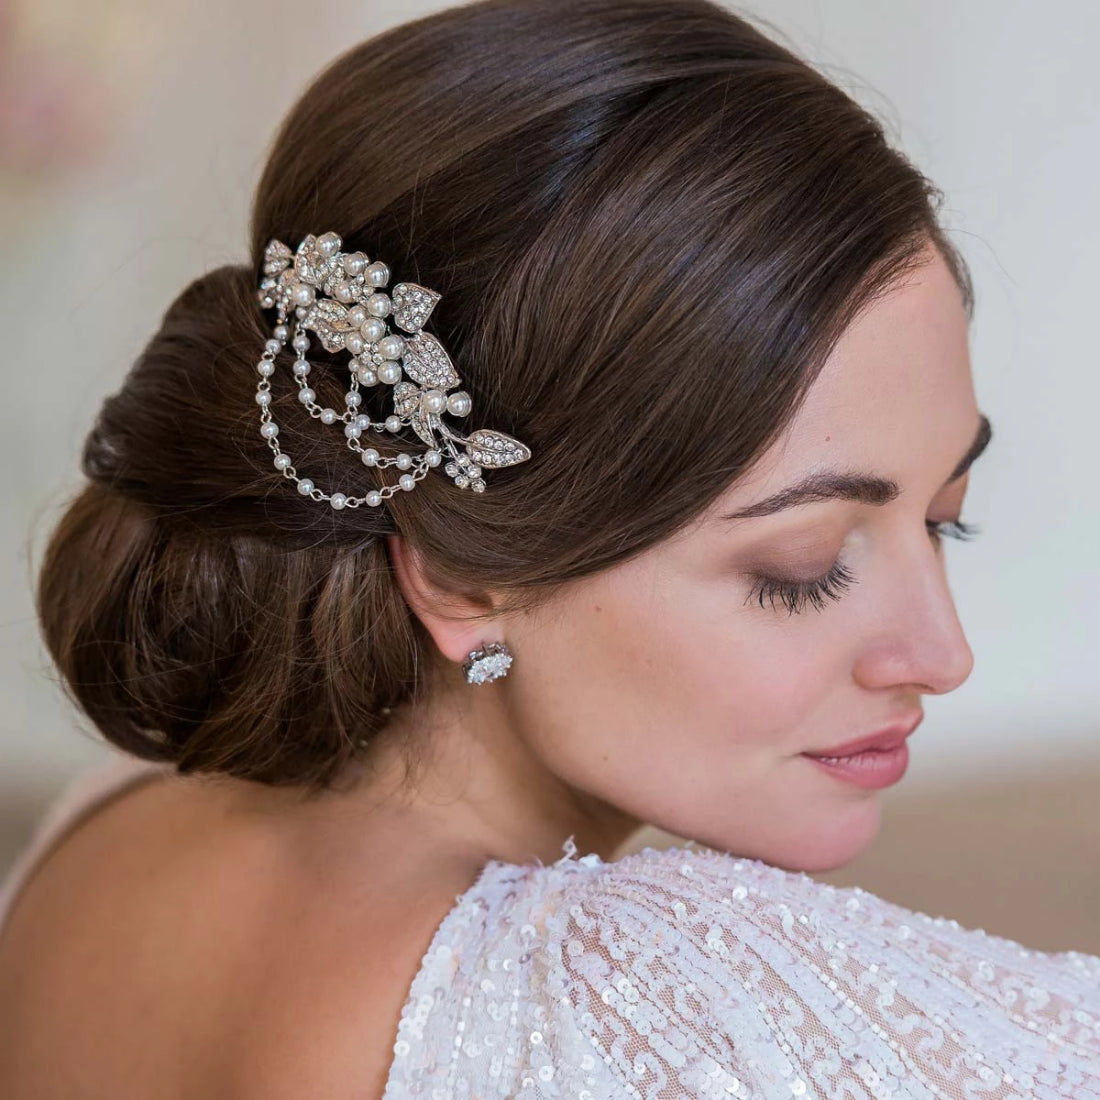 Cascades of Pearl Hair Comb shown in a side chignon wedding hairstyle